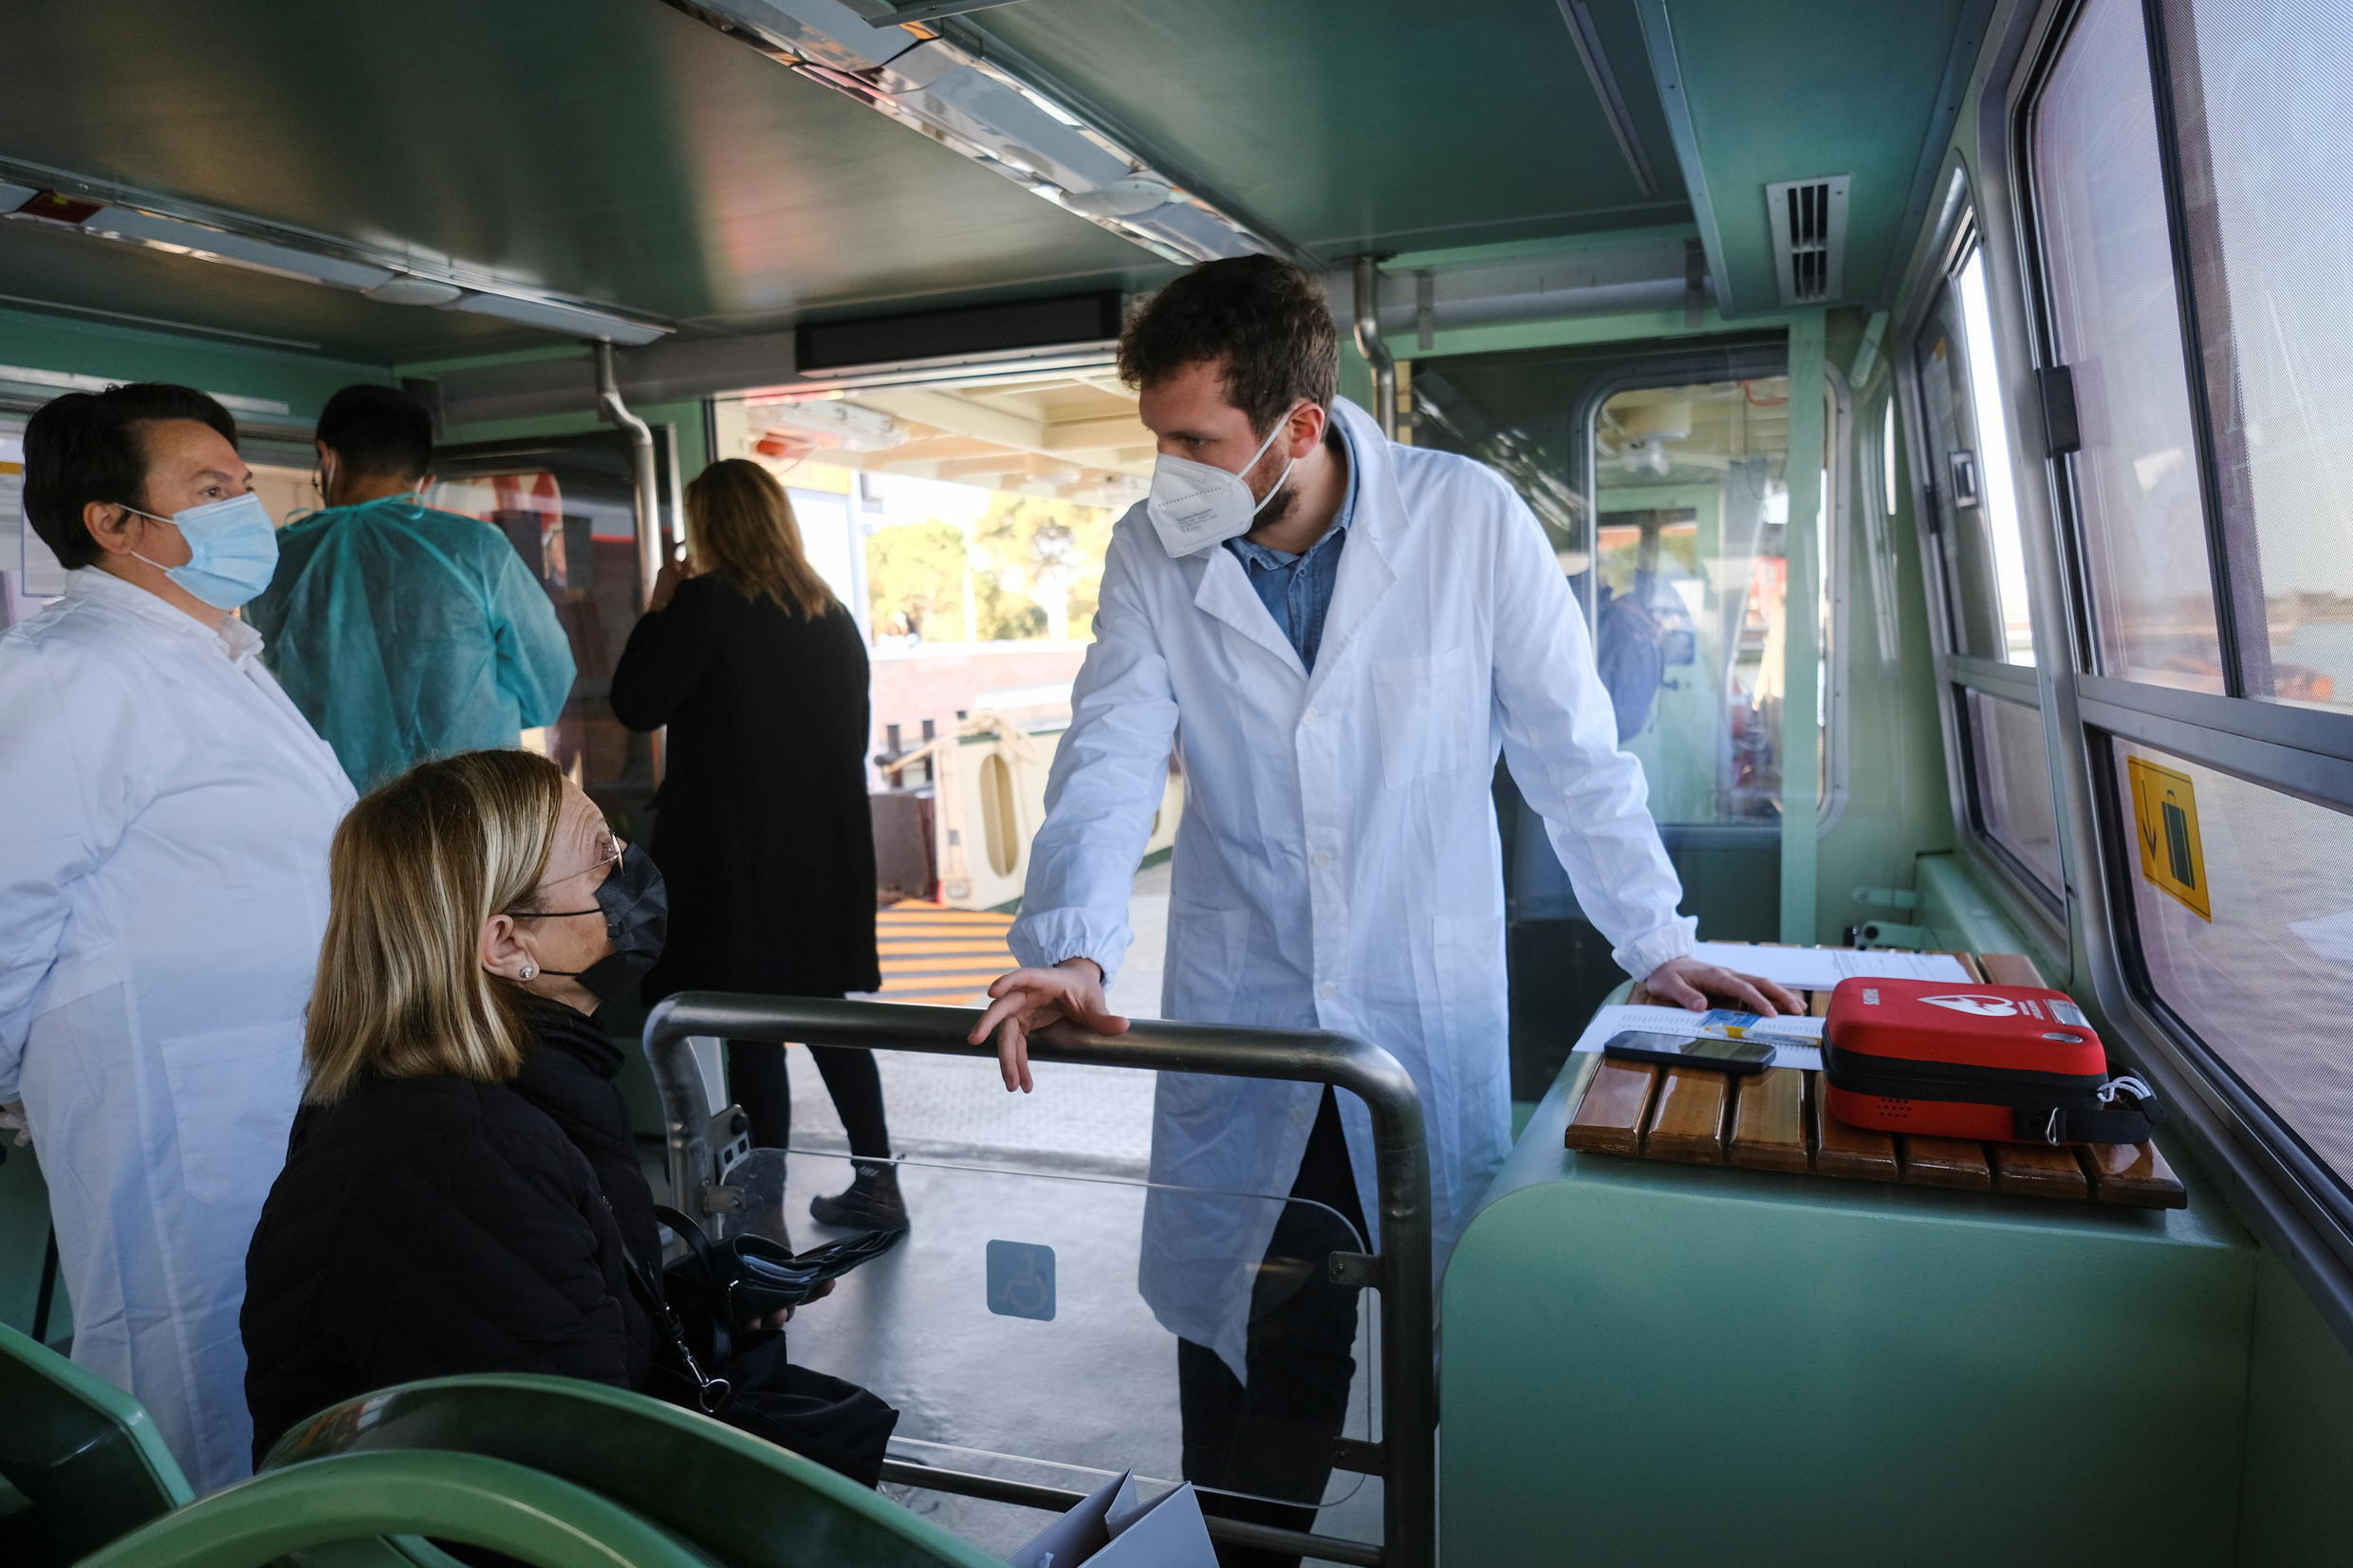 A Venice resident waits for an injection of a coronavirus disease (COVID-19) vaccine on board a traditional 'vaporetto', a ferry normally used for public transportation in Venice, Italy, April 5, 2021.